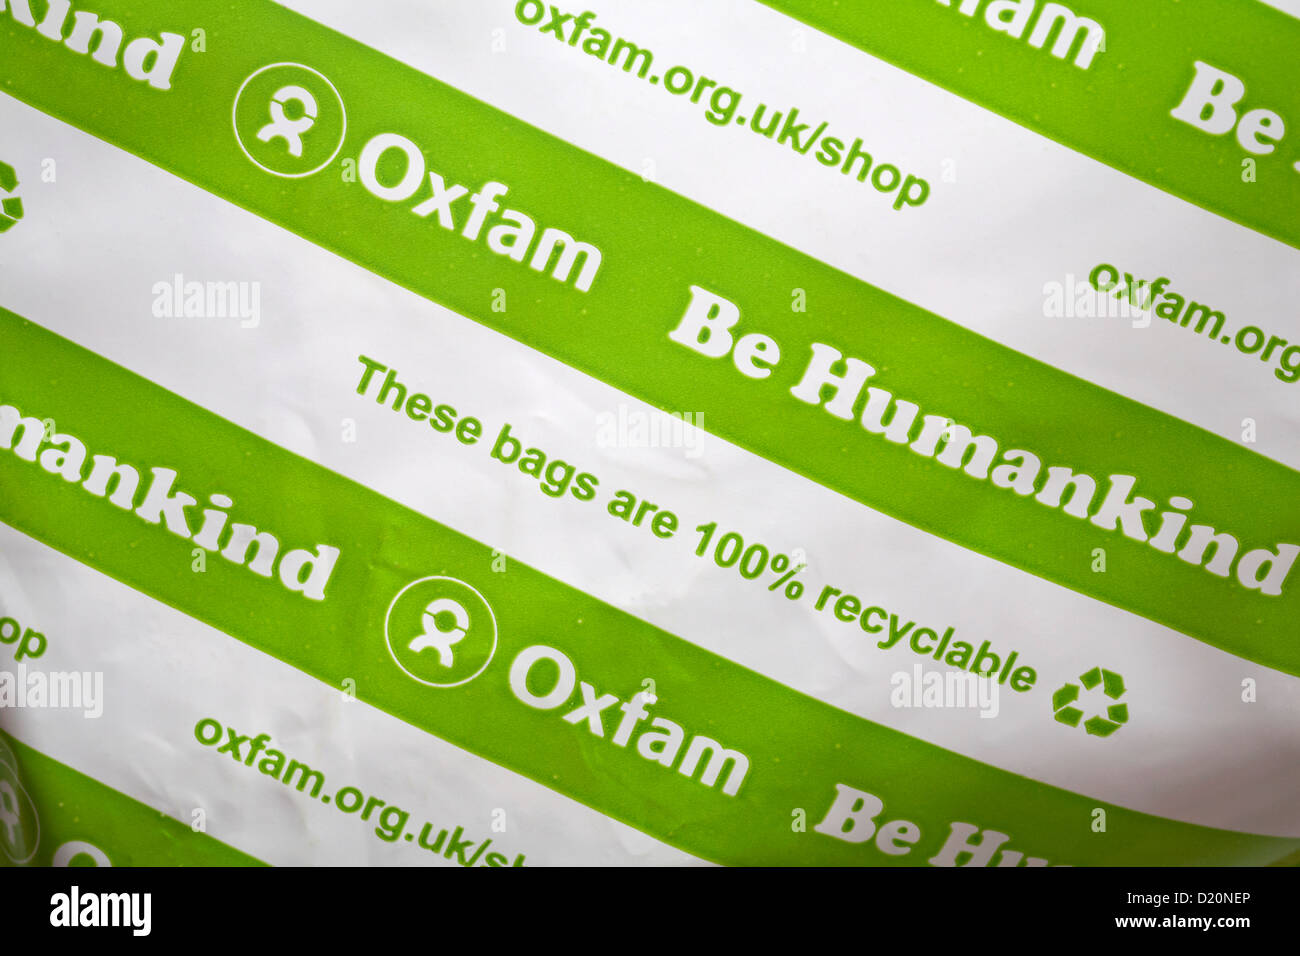 These bags are 100% recyclable Be Humankind - Oxfam bag - Stock Image